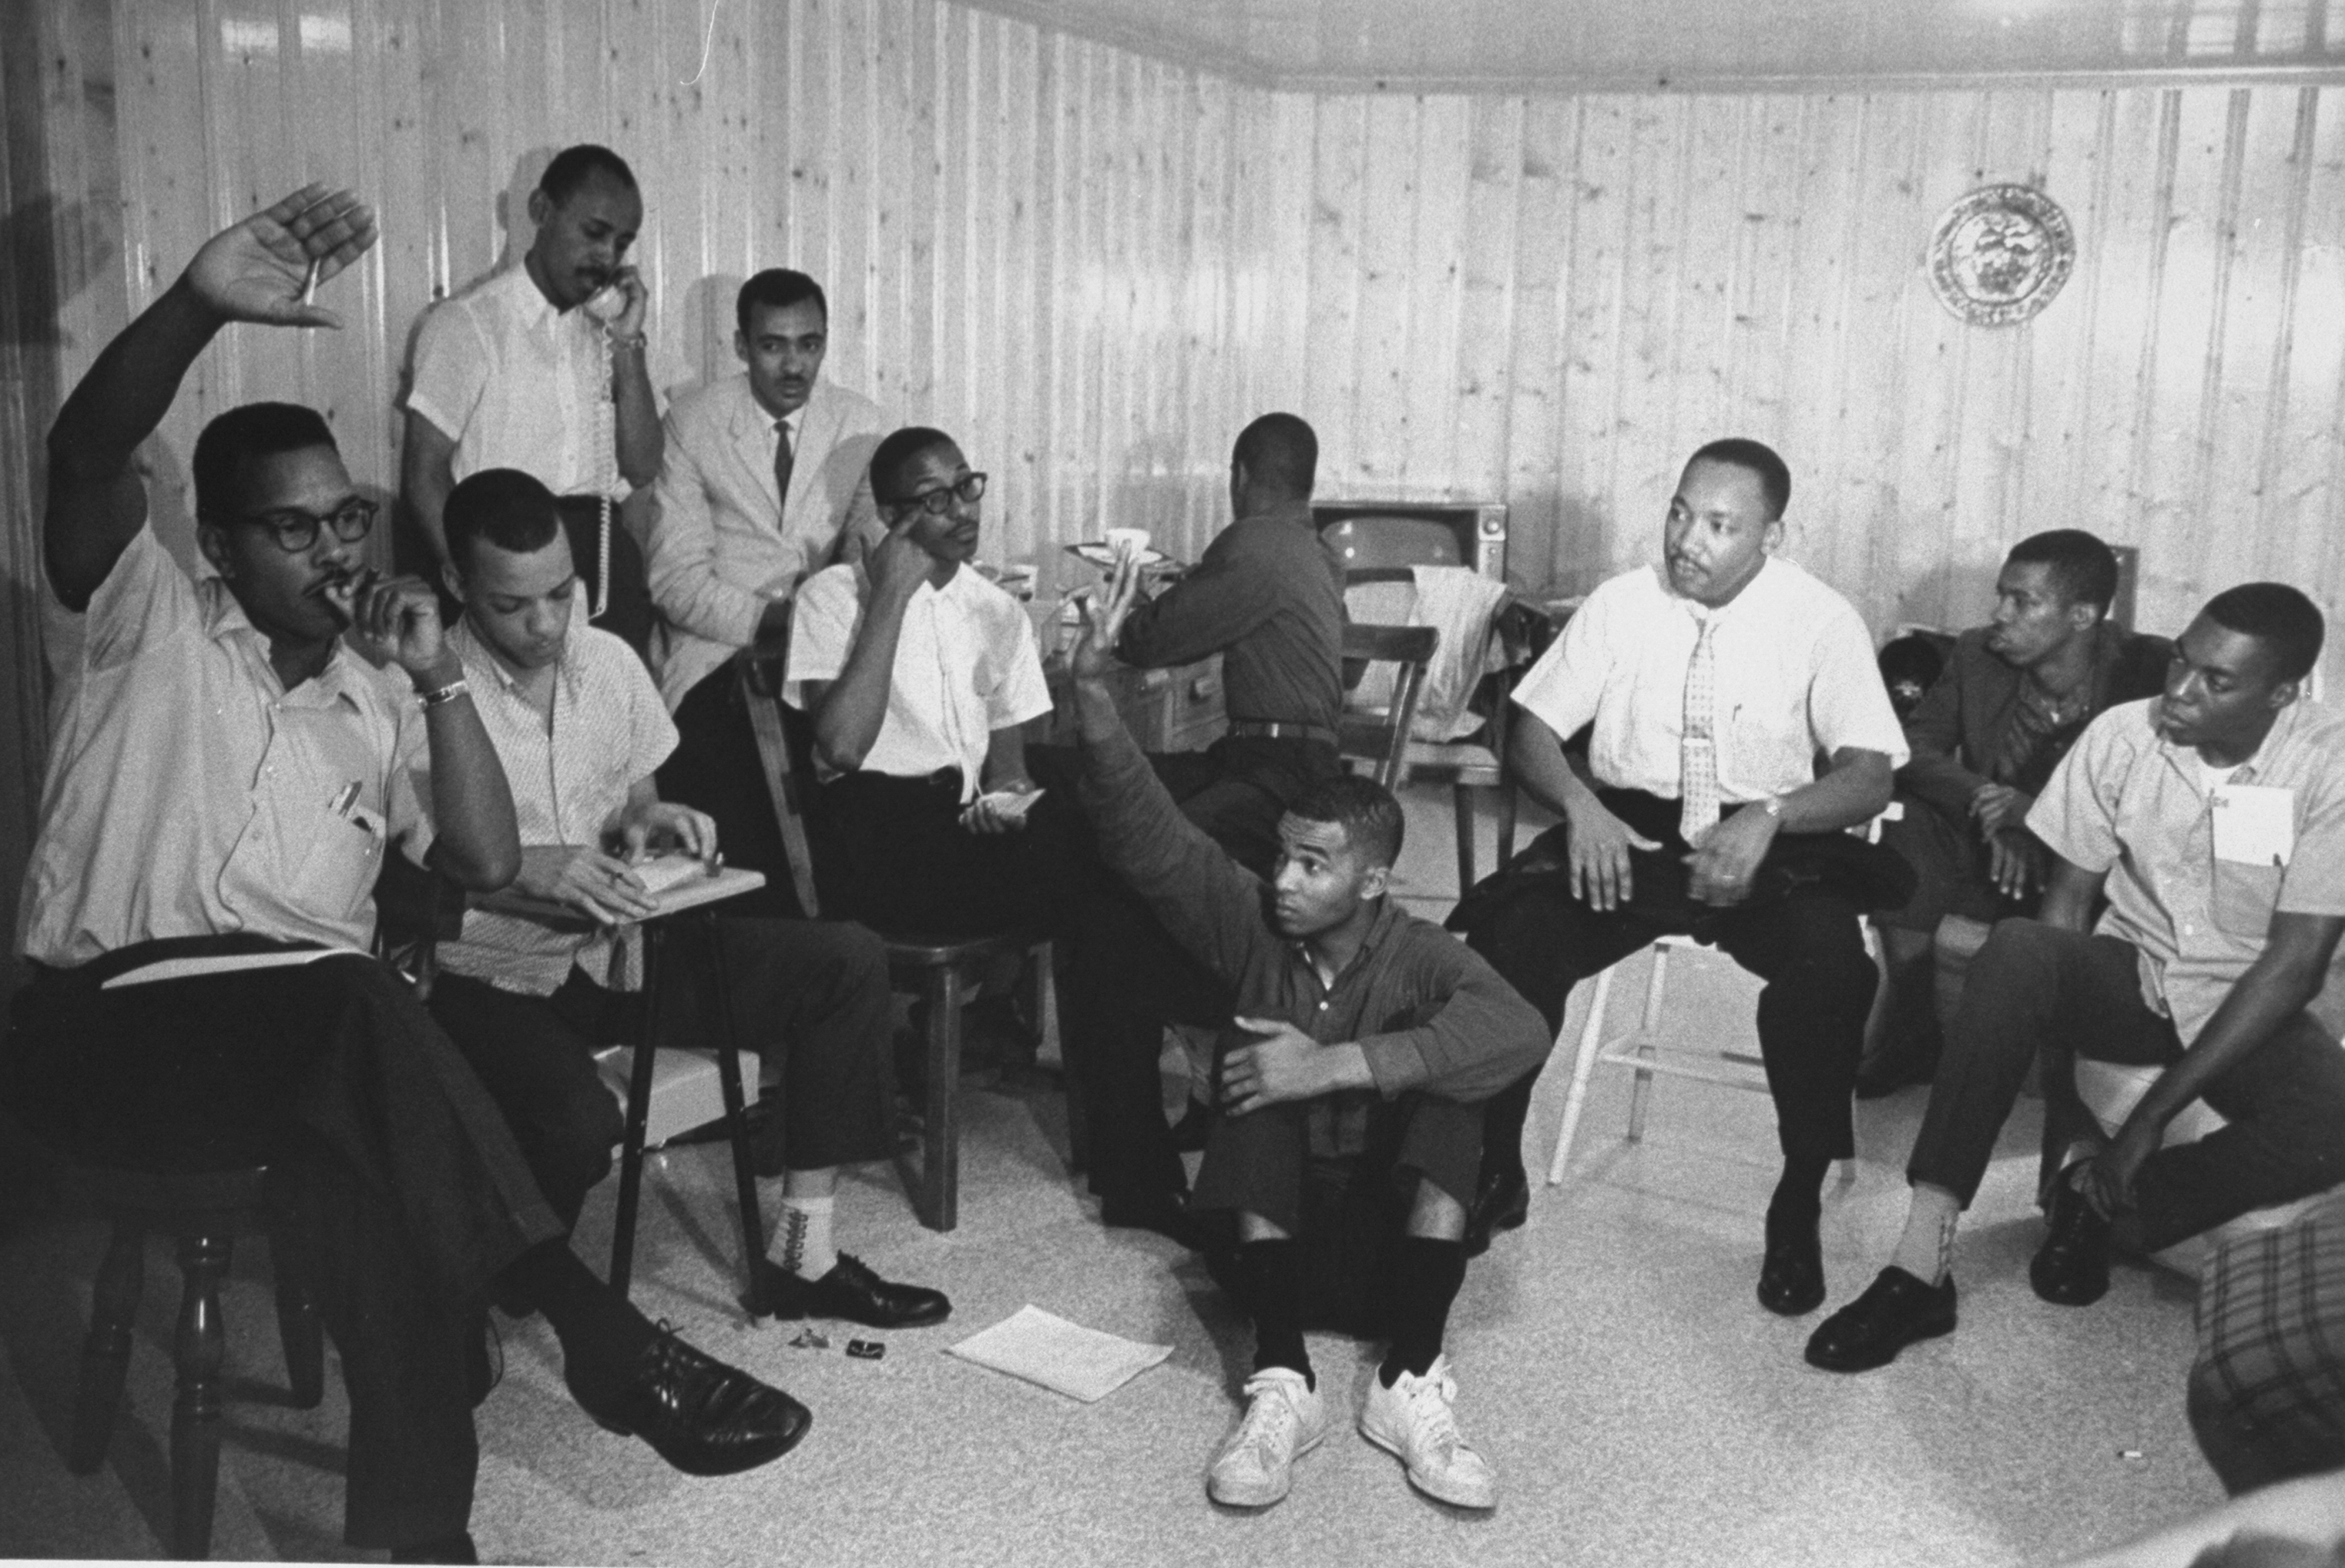 Rev. Martin Luther King, Jr. (3R) participating in planning session for Freedom Riders' bus trip from Montgomery, Alabama to Jackson, Mississippi.